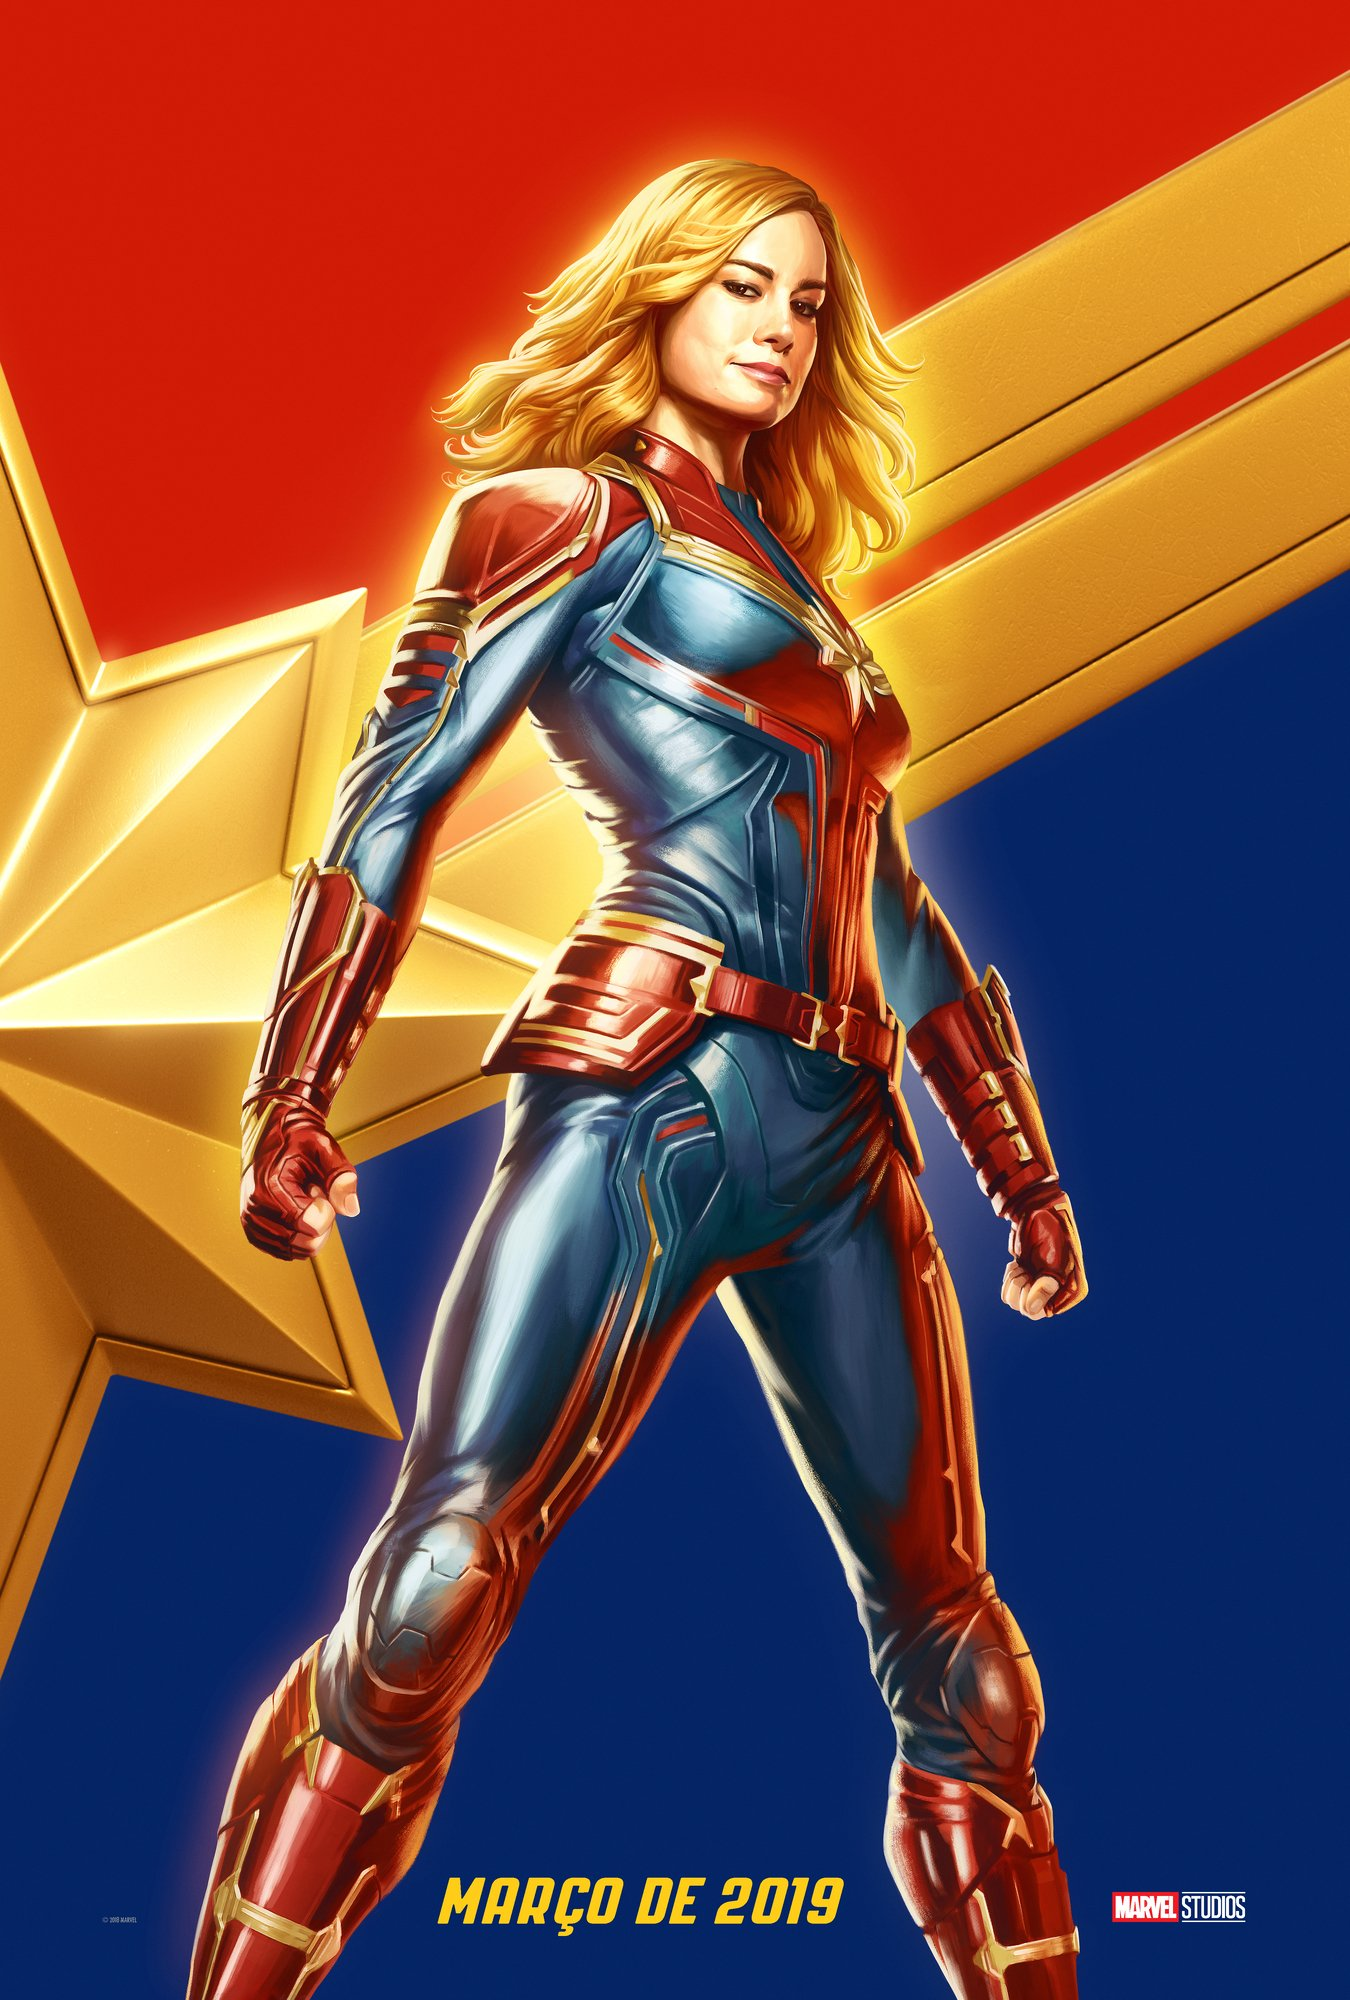 captain marvel trailer : teaser trailer